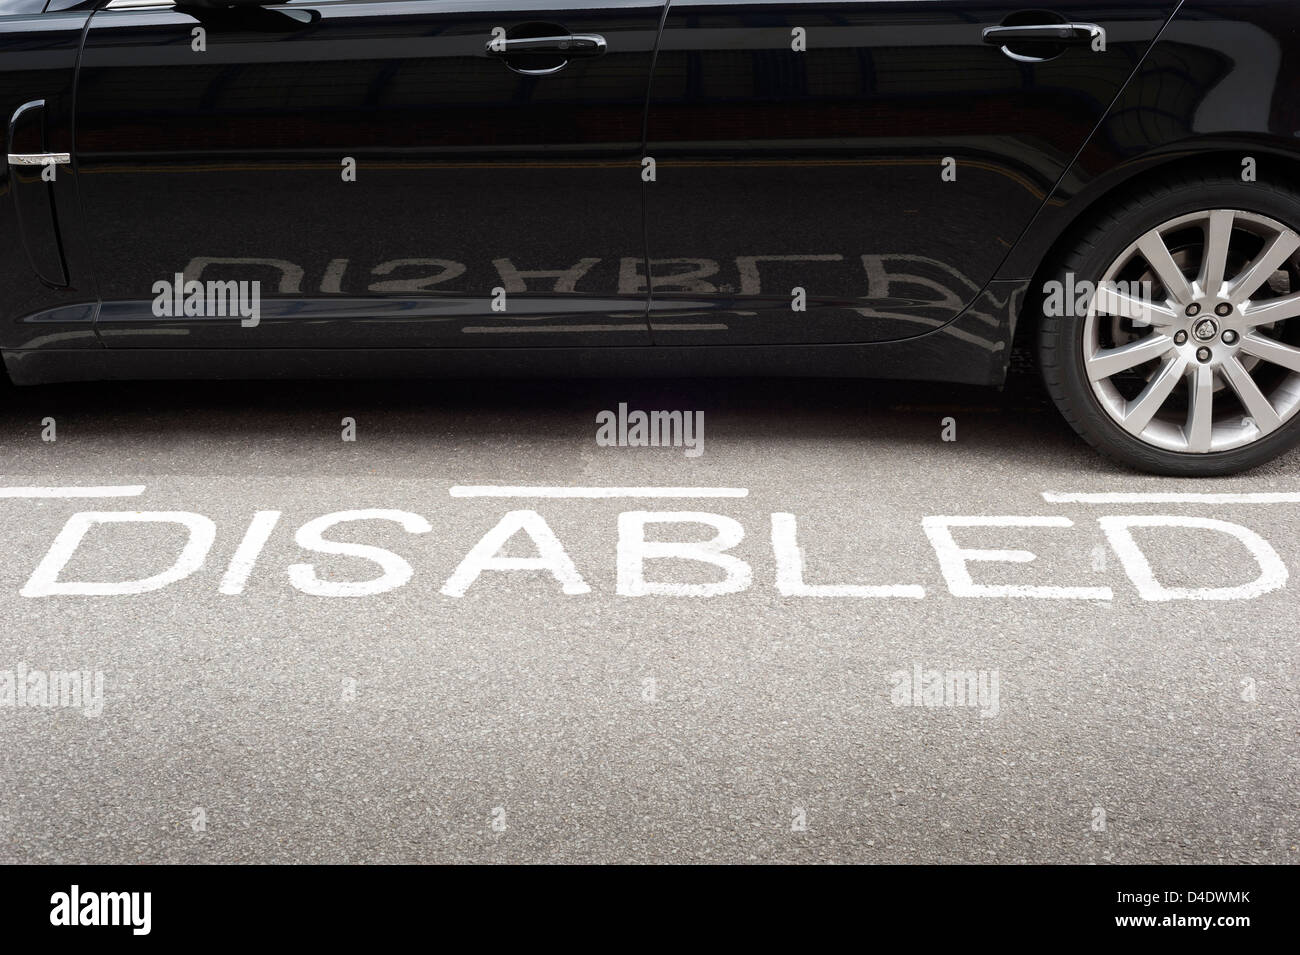 Disabled parking bay, car park, UK - Stock Image